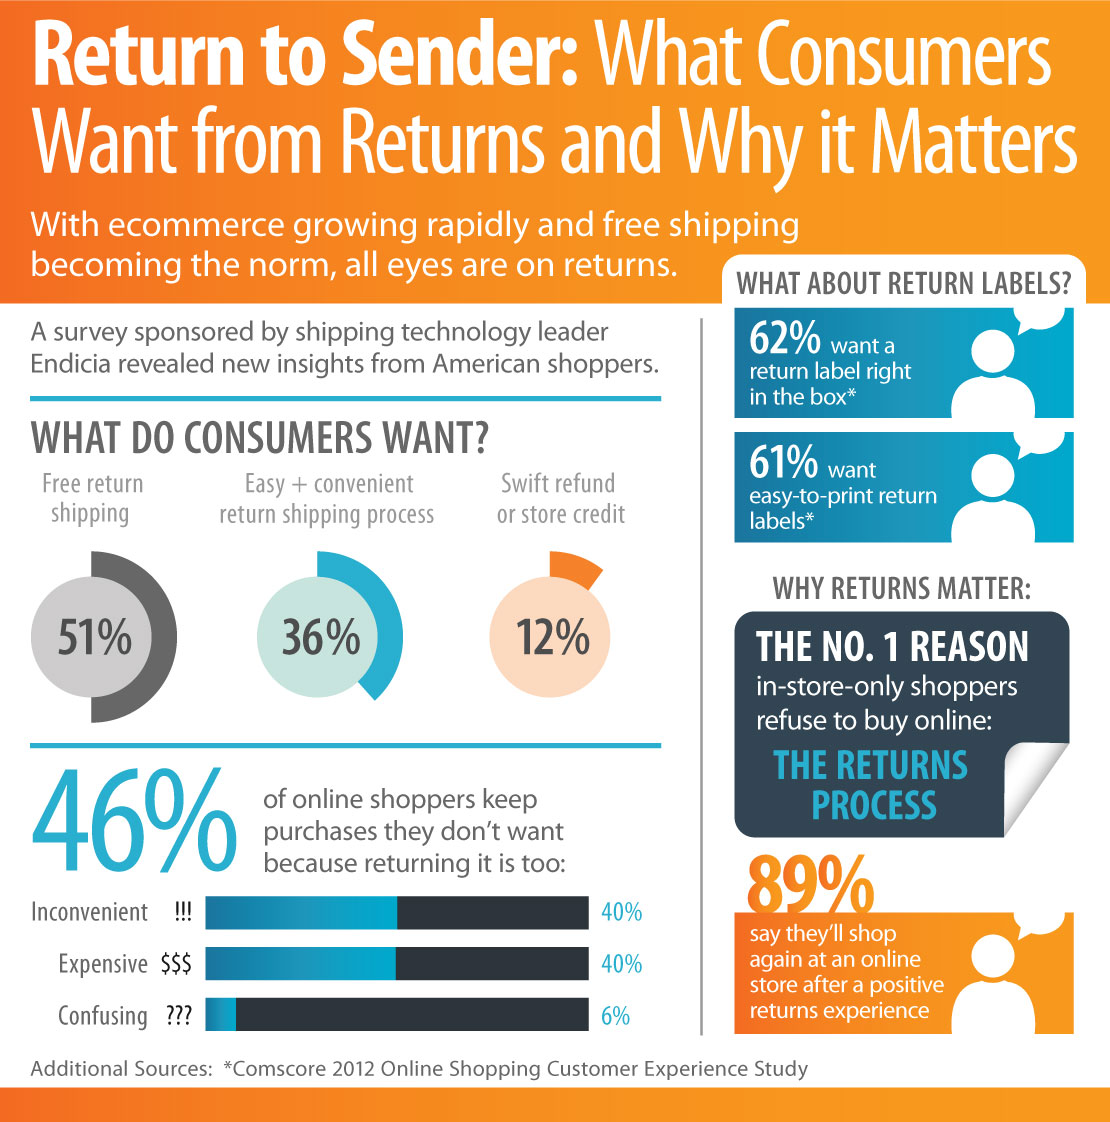 Infographic of a survey sponsored by shipping technology leader Endicia revealed new insights from American shoppers.